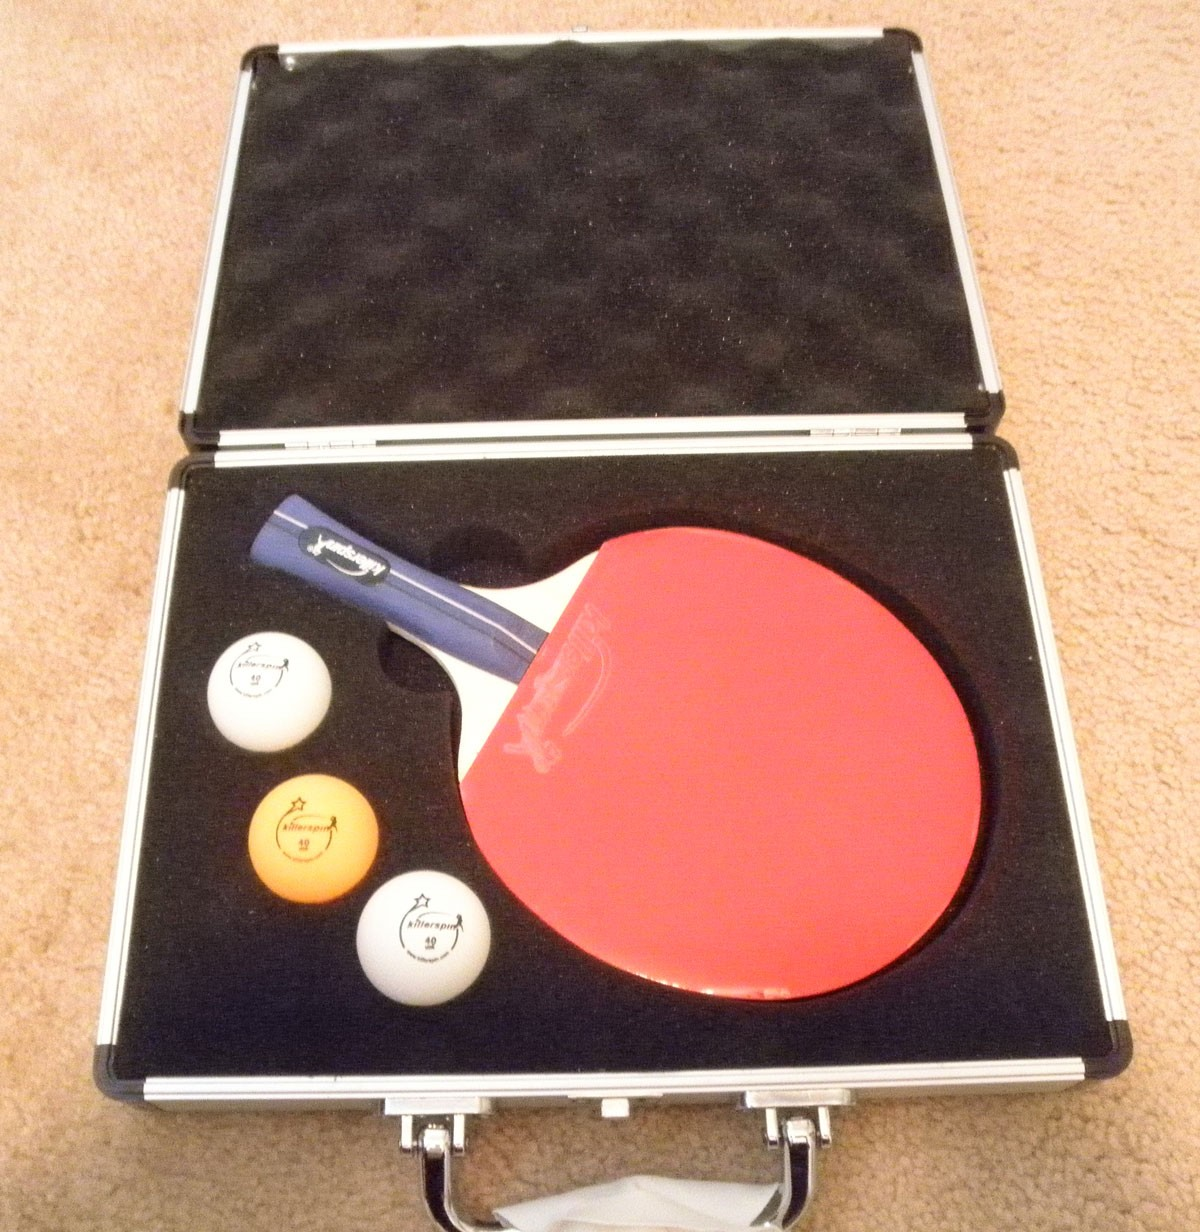 Spin Red Metallic Case With Jet 200 Basic Paddle And 3 Personalized Custom